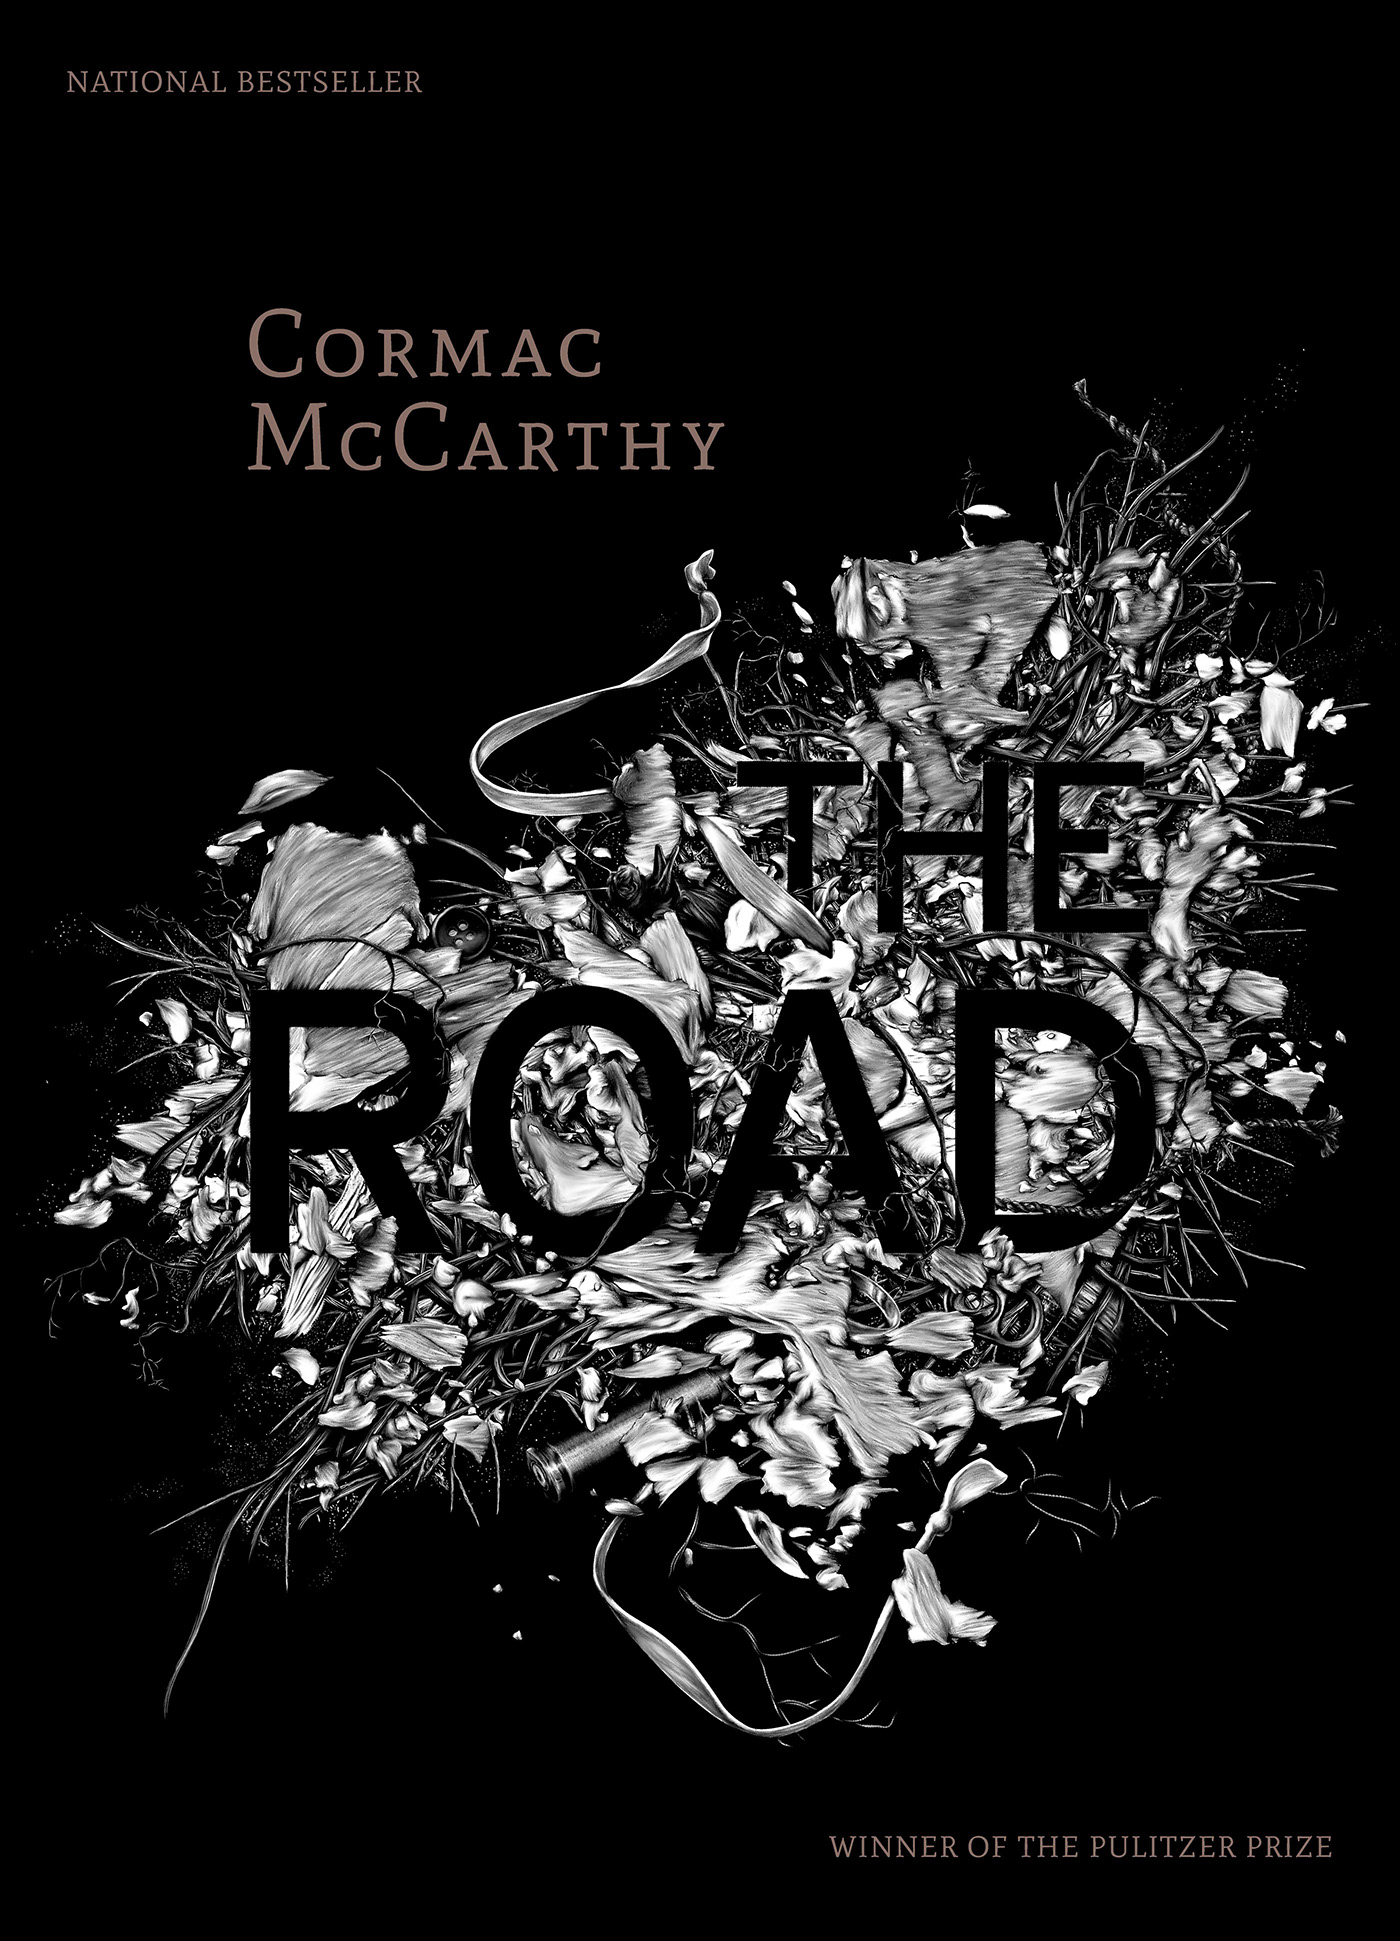 The Road, Book Cover Redesign